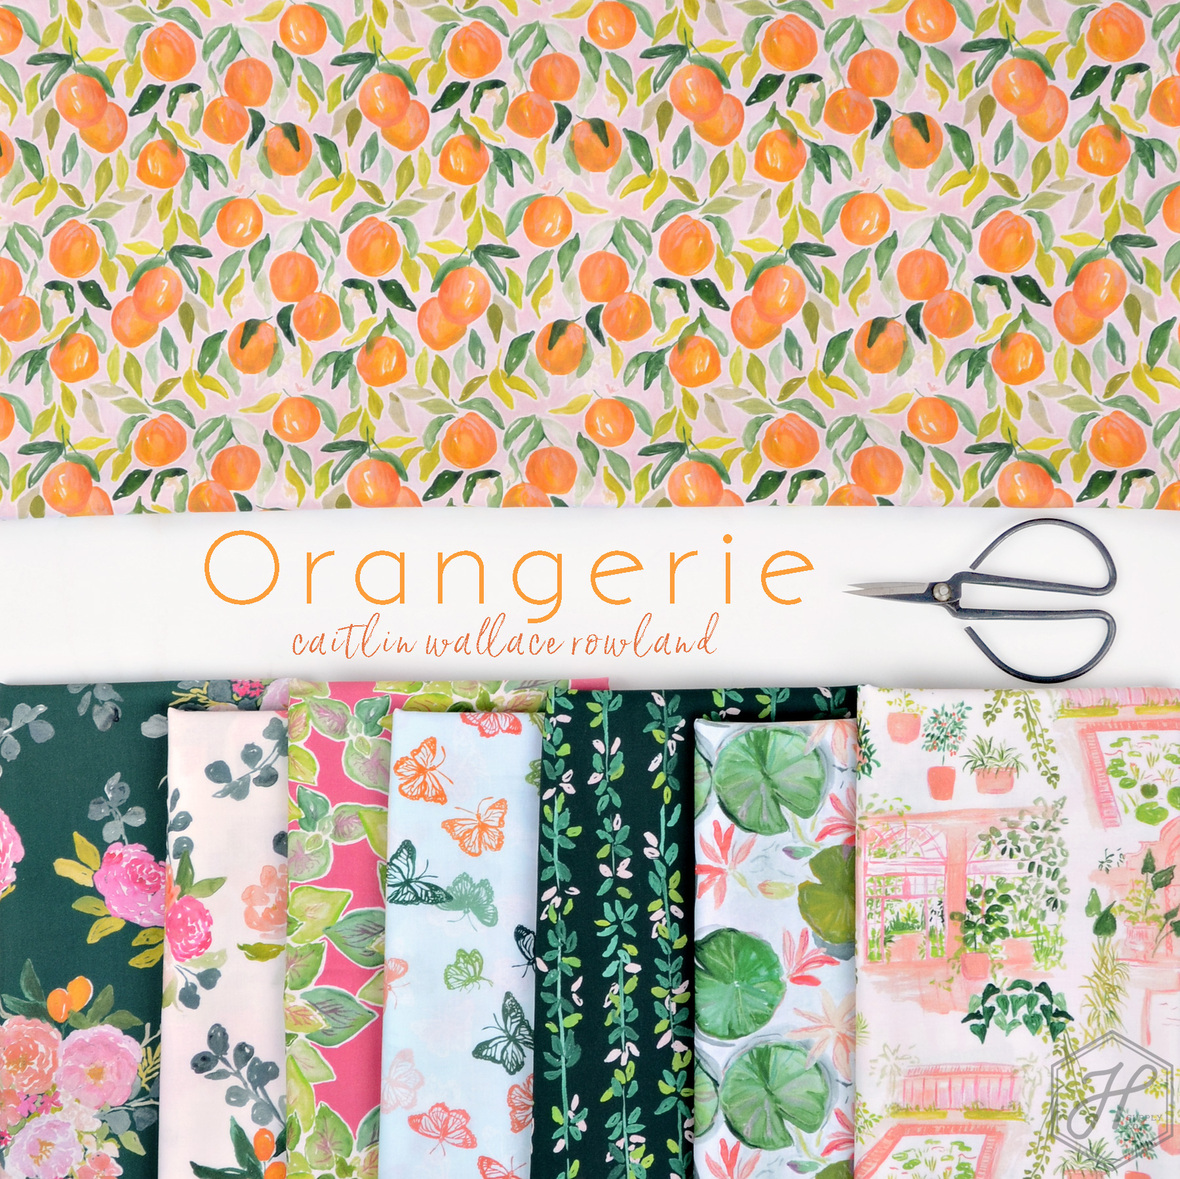 Orangerie-Fabric-Caitlin-Wallace-Rowland-for-Hawthorne-Suply-Co-and-Dear-Stella